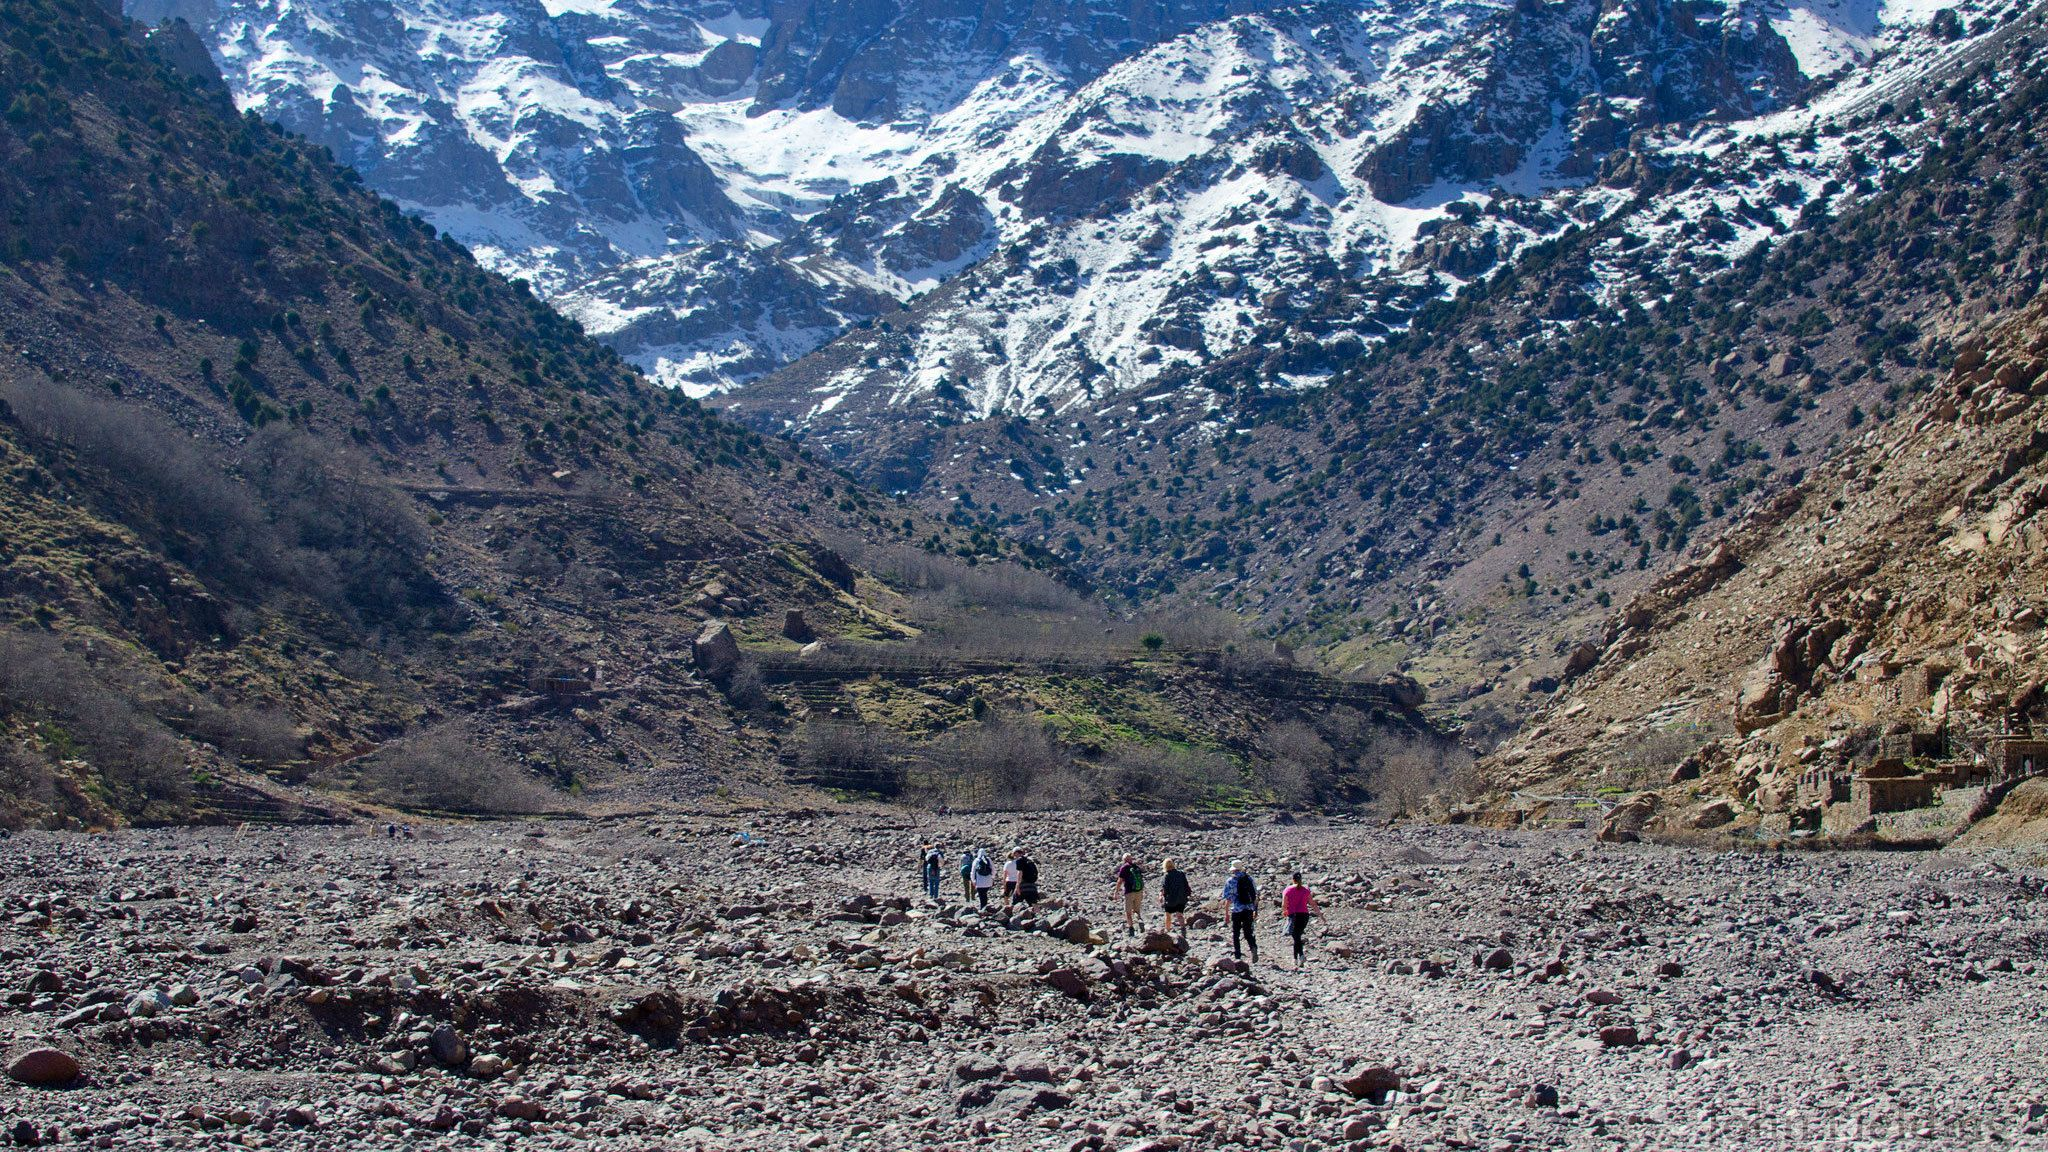 Hikers walking across dry river bed in valley of Atlas Mountains in Marrakech